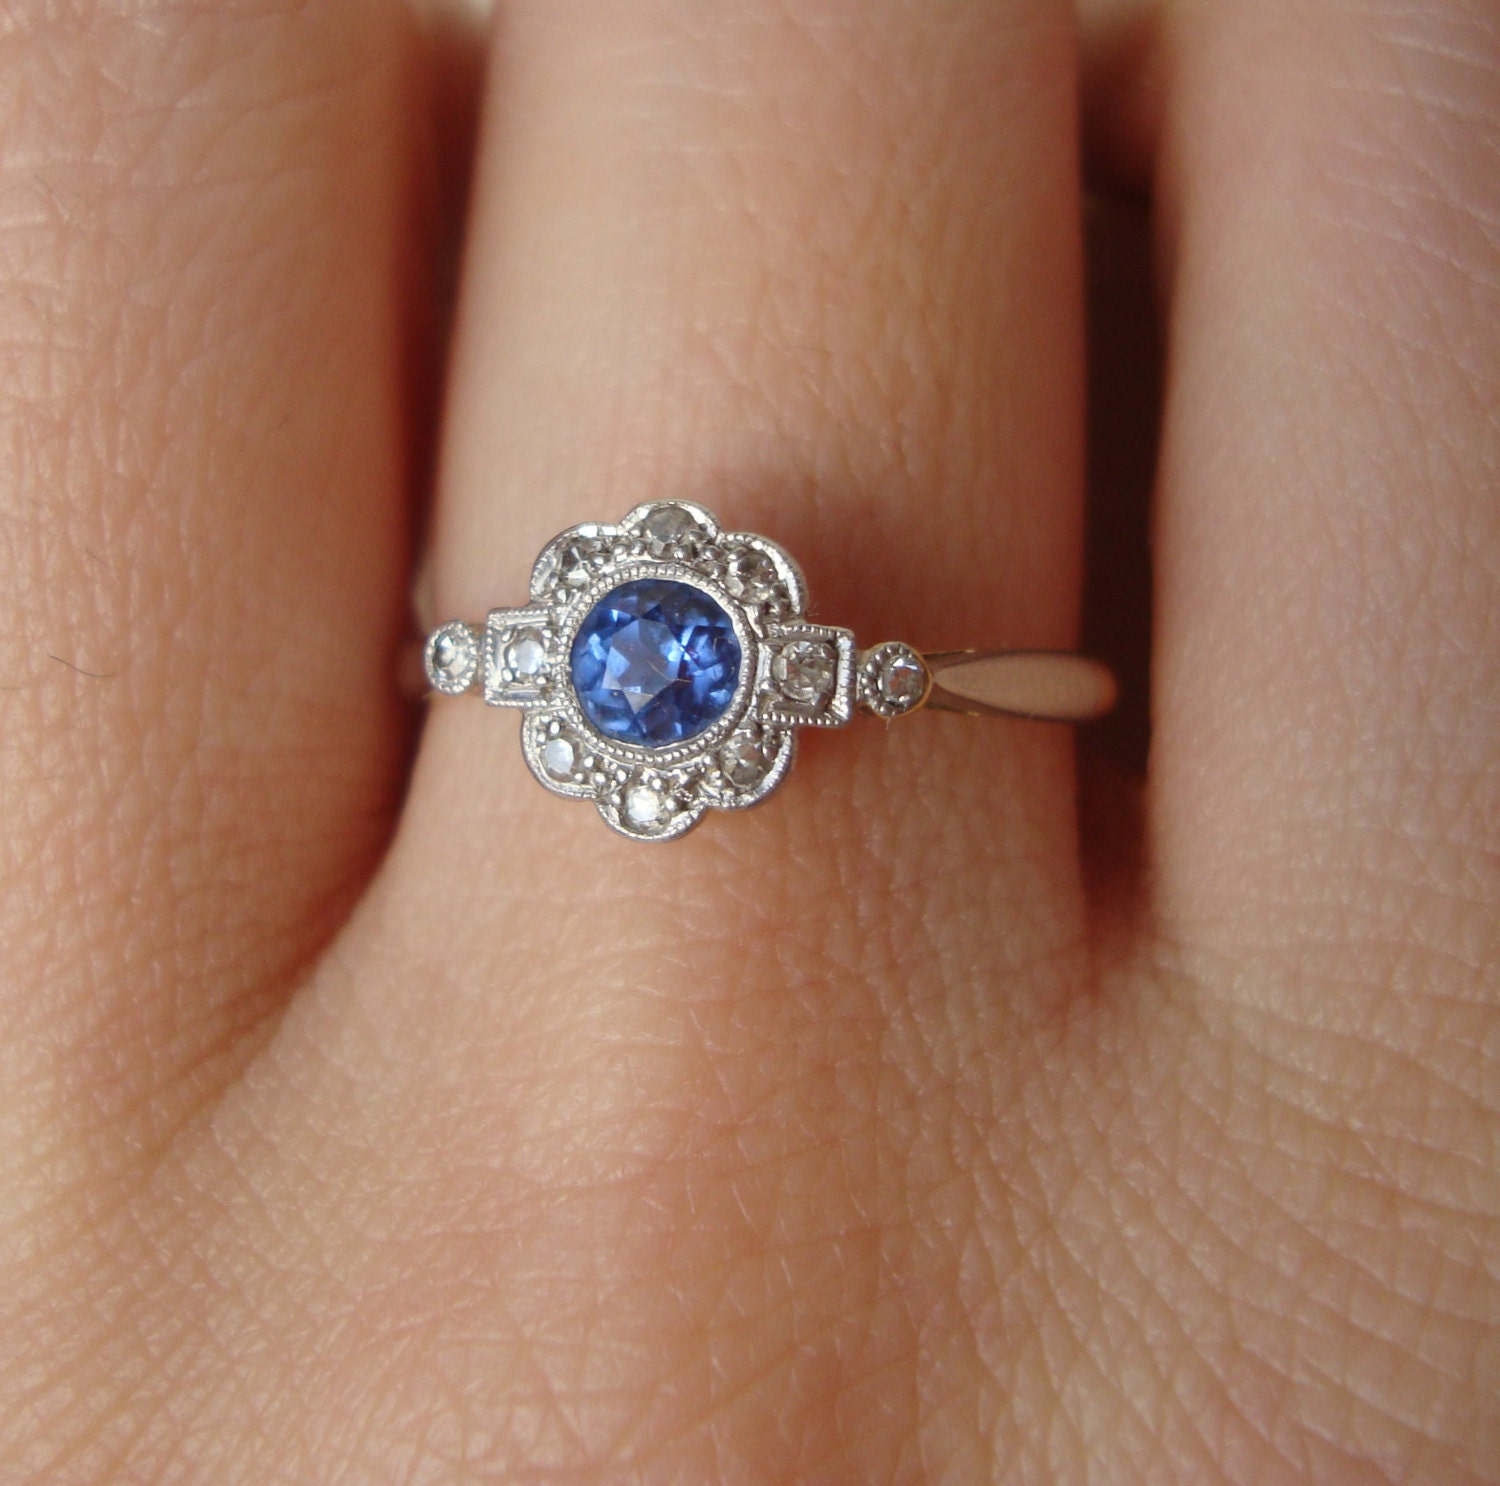 art deco cornflower blue sapphire diamond engagement ring. Black Bedroom Furniture Sets. Home Design Ideas